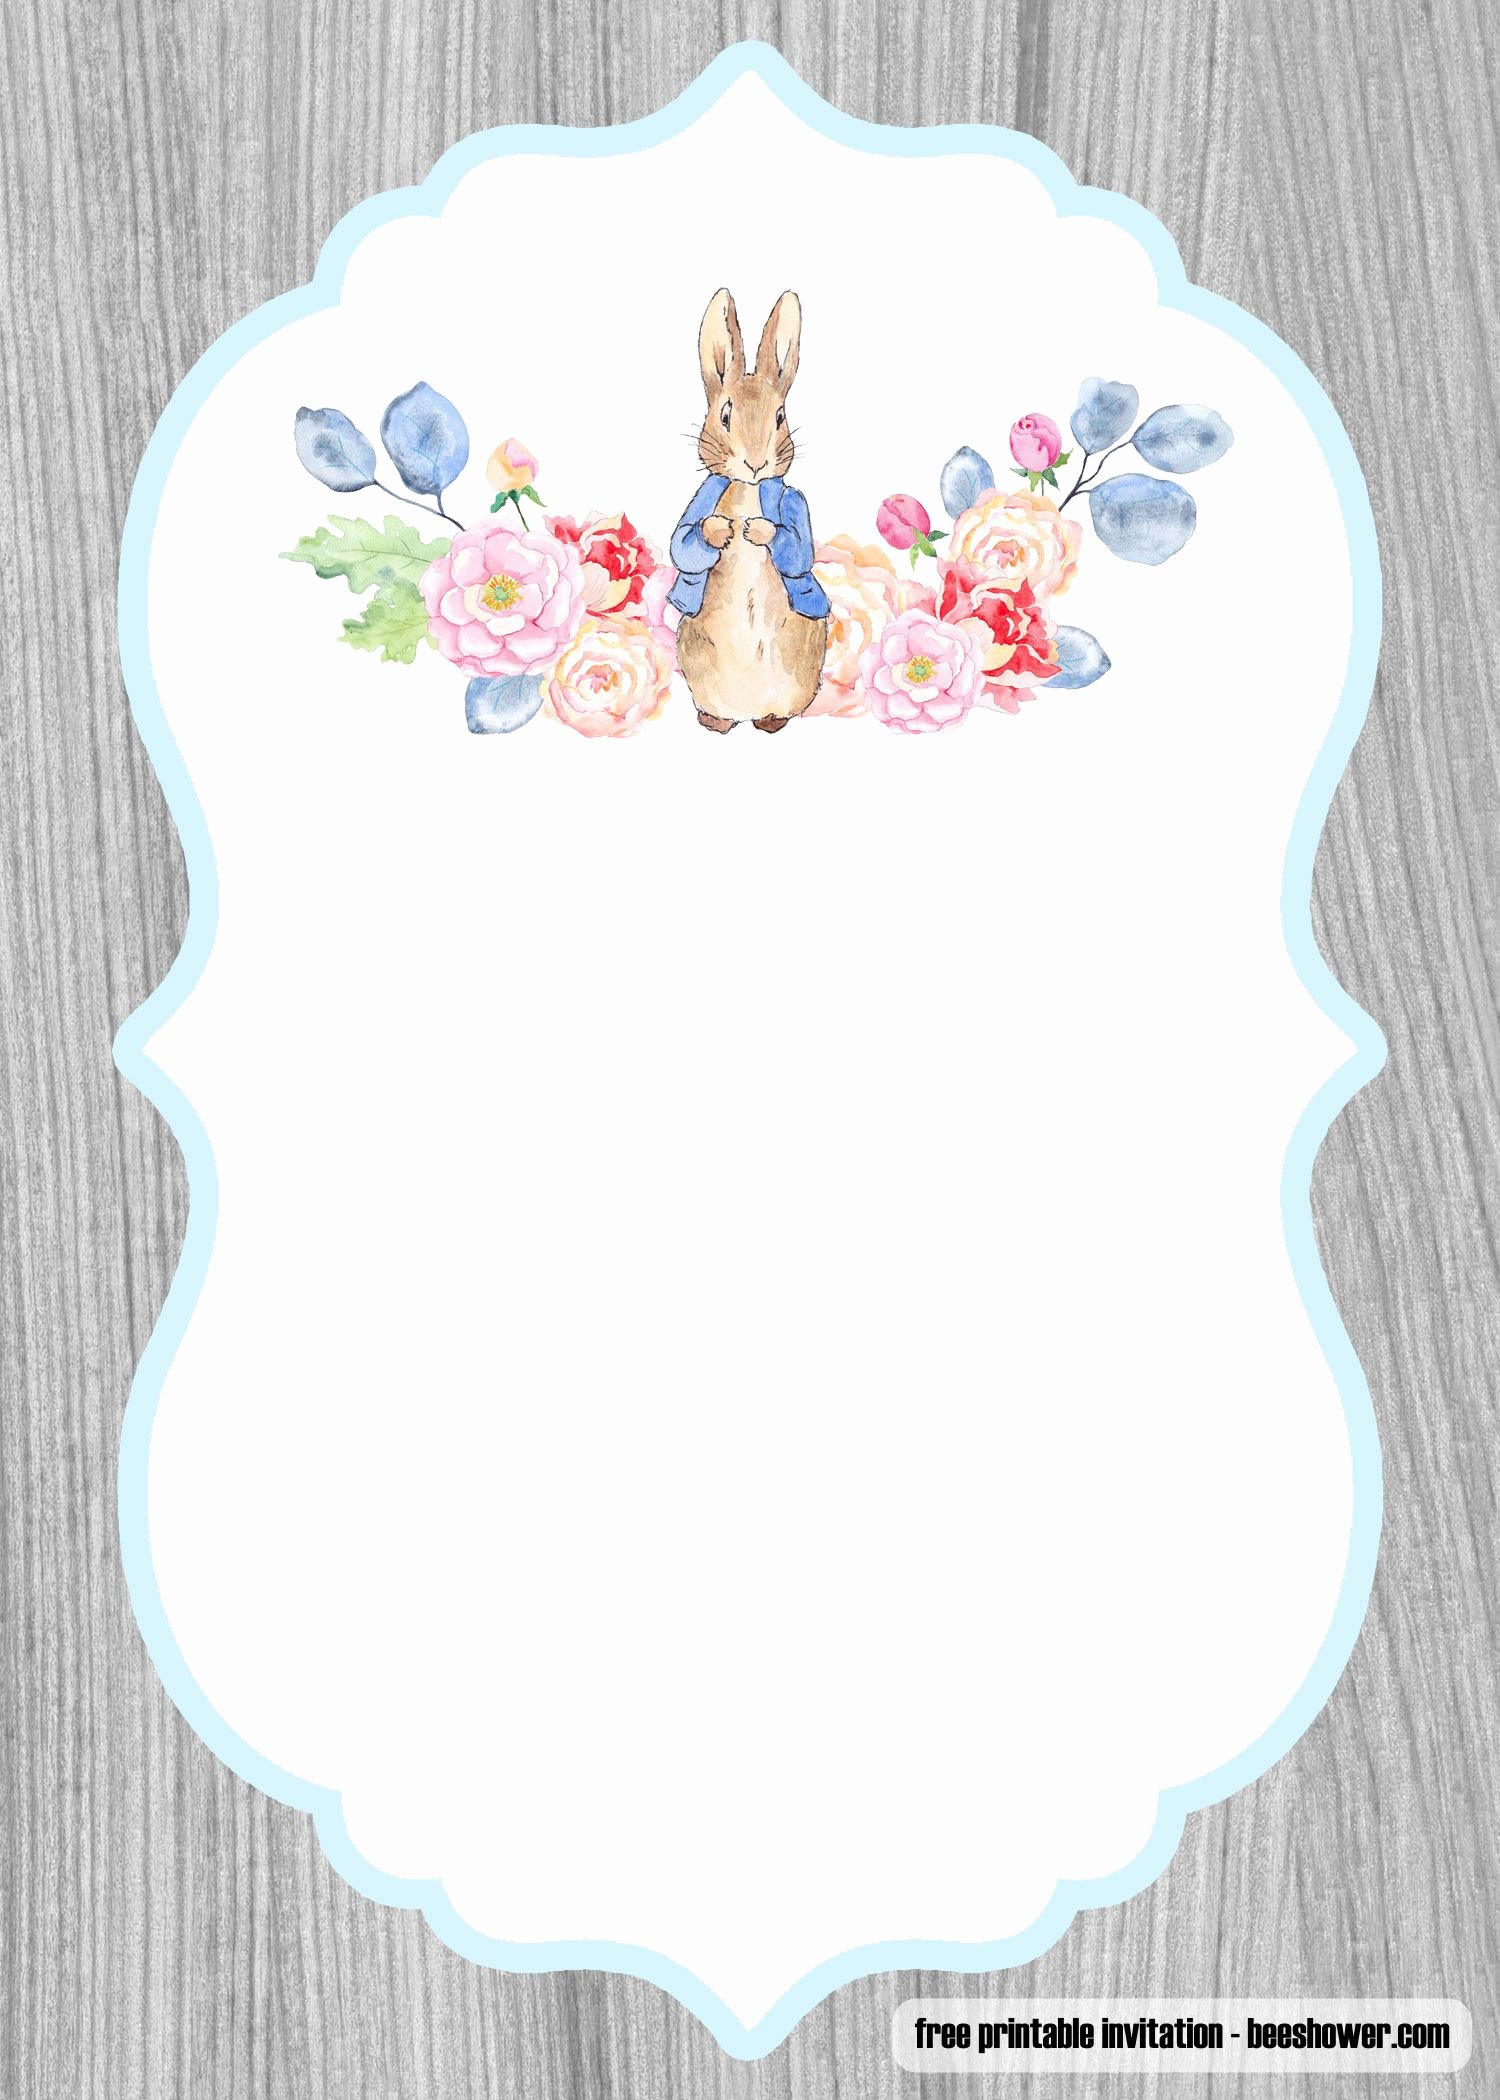 Bunny Birthday Invitation Template Beautiful Download now Free Peter Rabbit Baby Shower Invitations